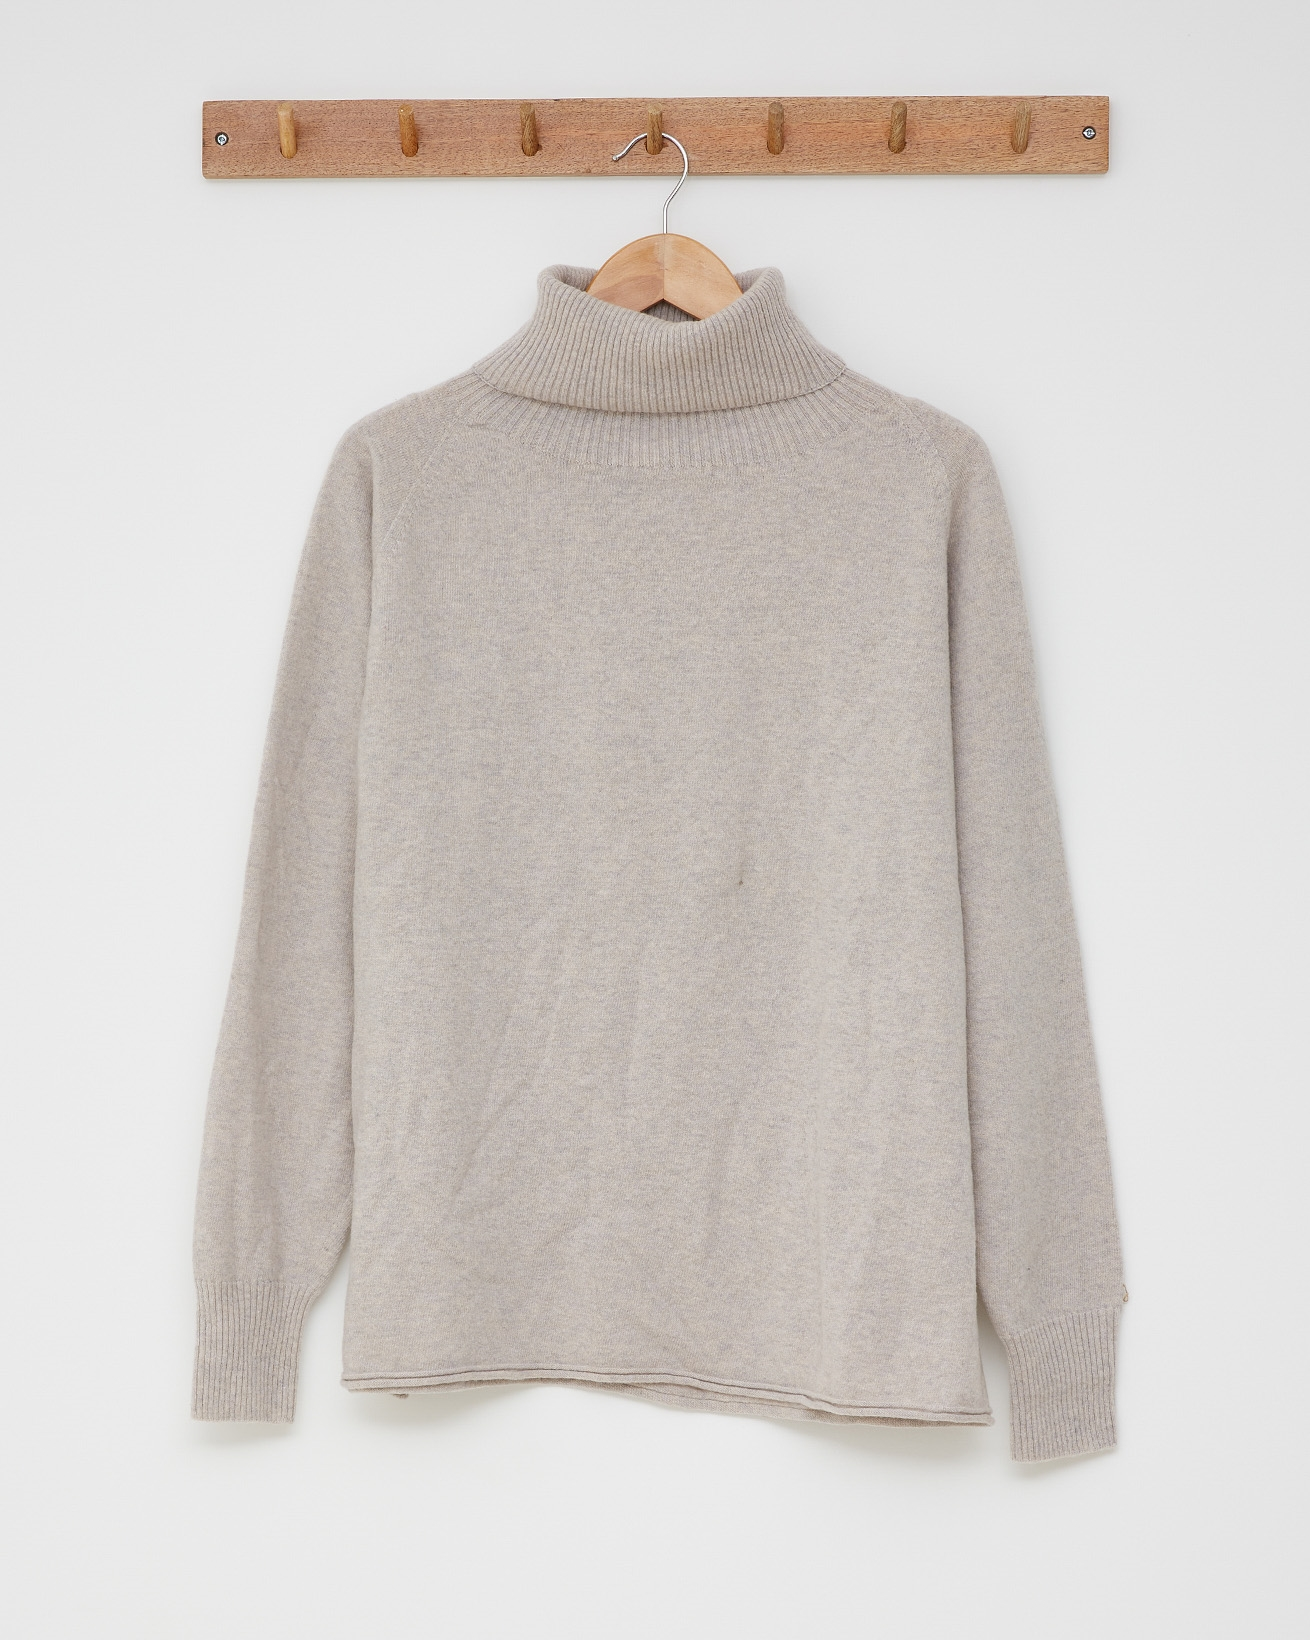 Geelong slouch roll neck - Size Medium -  Fossil - 2604